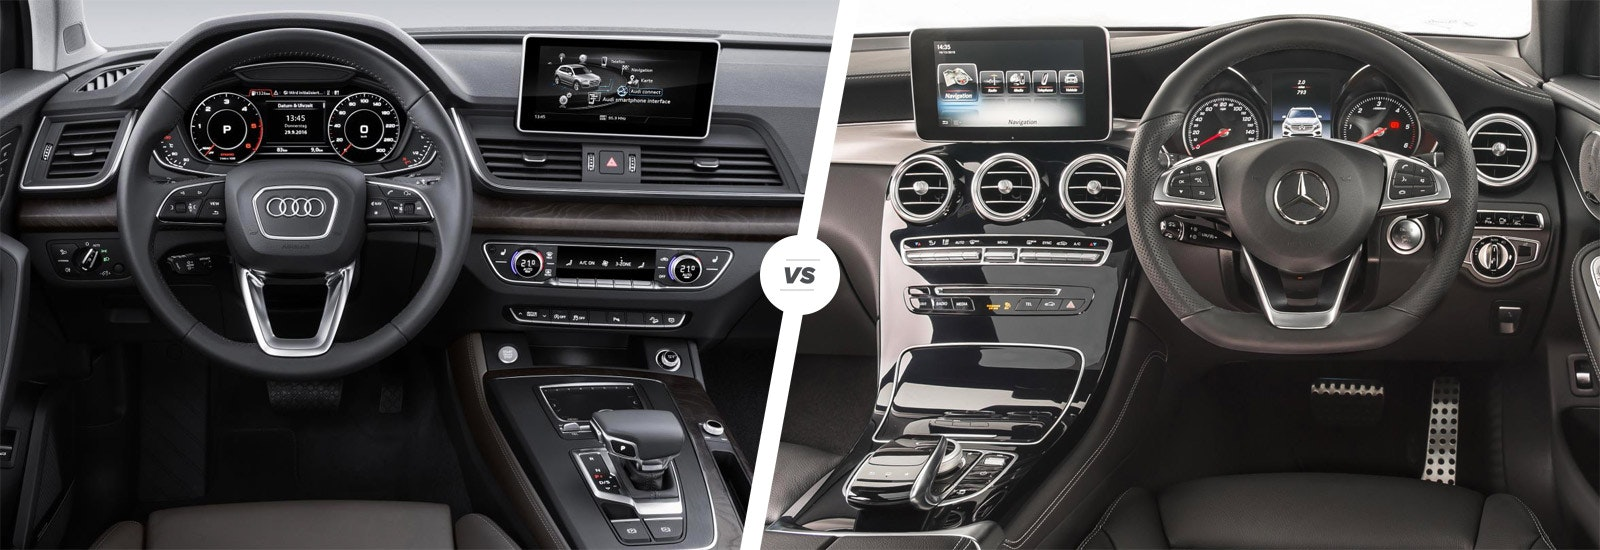 Mercedes Glc Vs Audi Q5 Suv Comparison Carwow